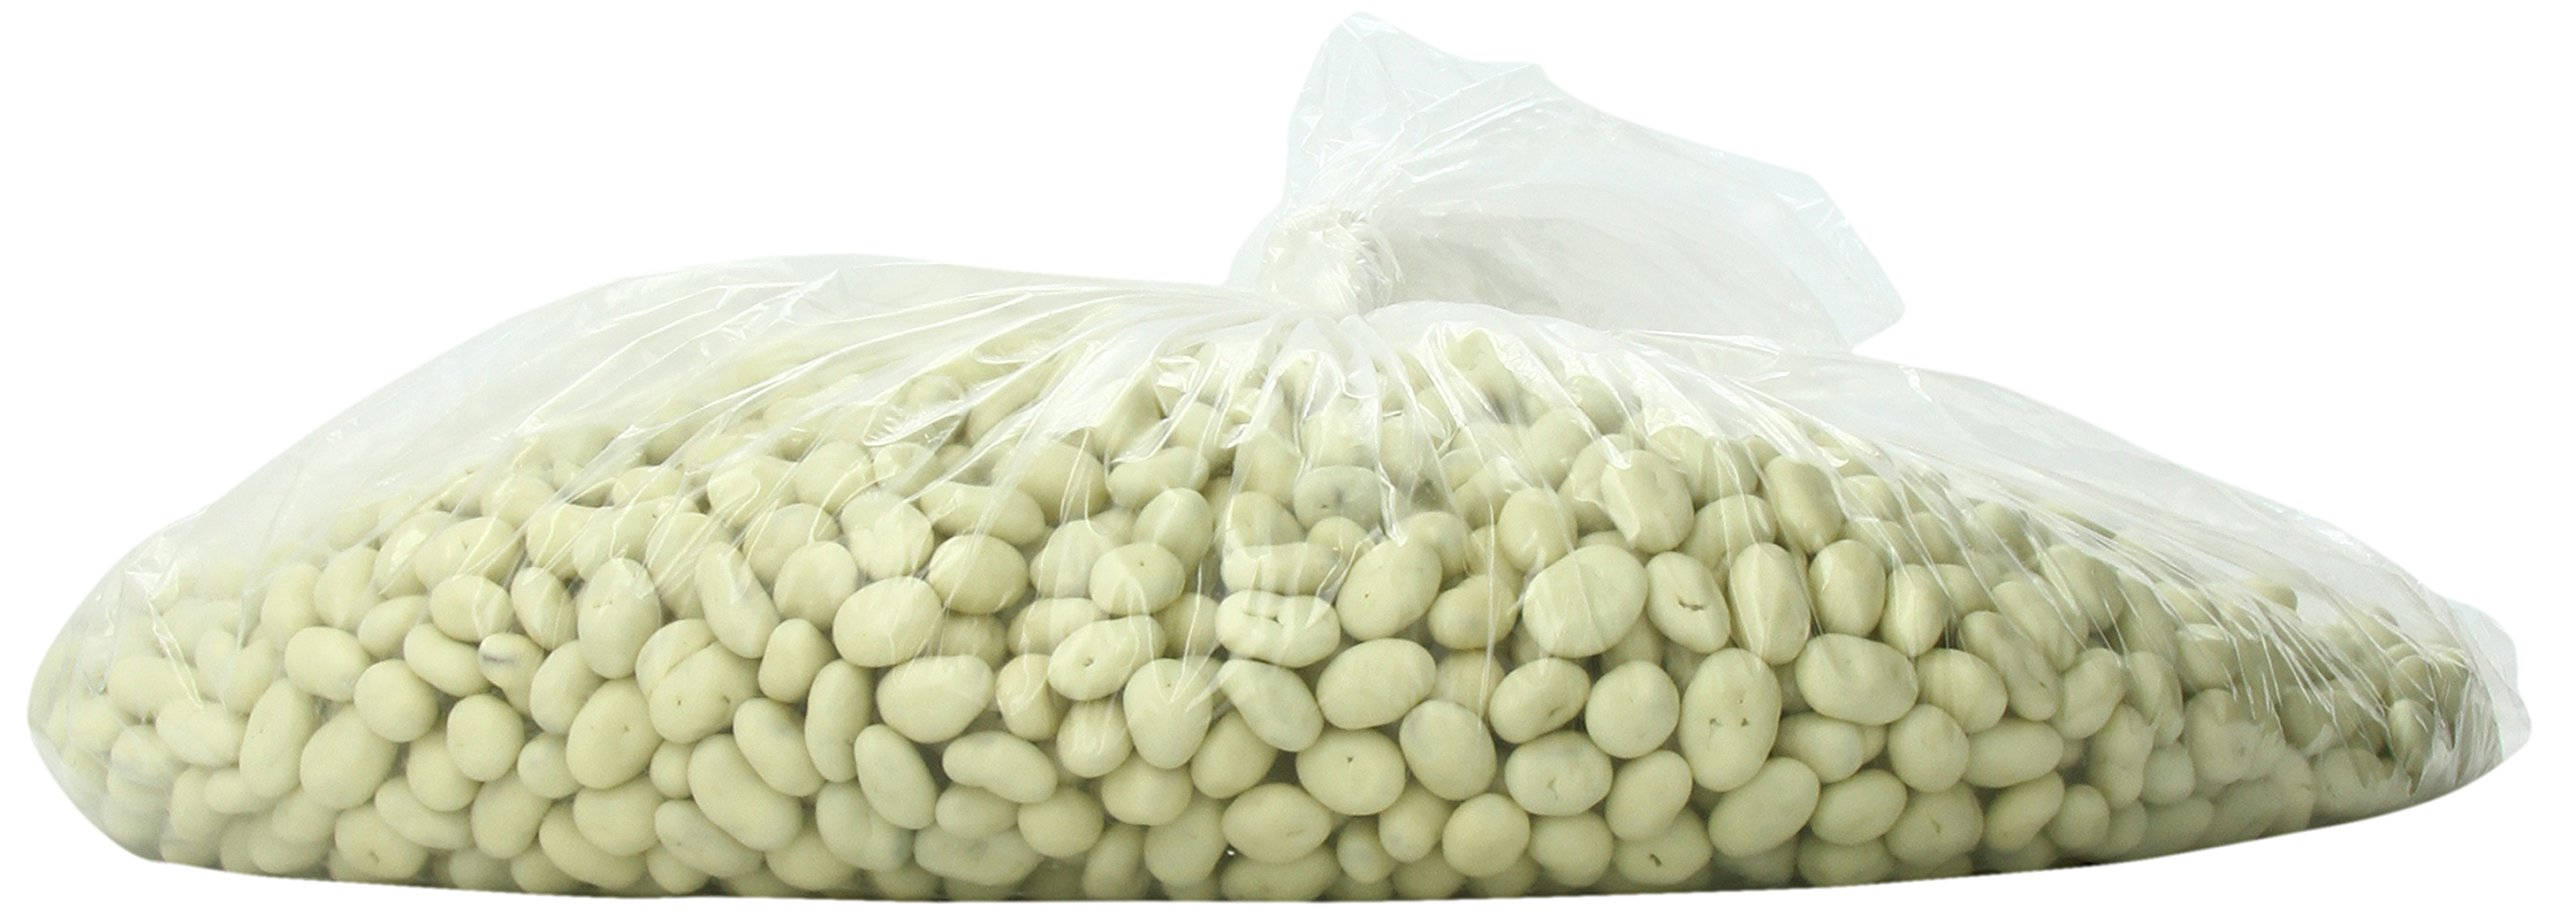 Sunridge Farms Candy, Yogurt Covered Raisins, 10 Pound